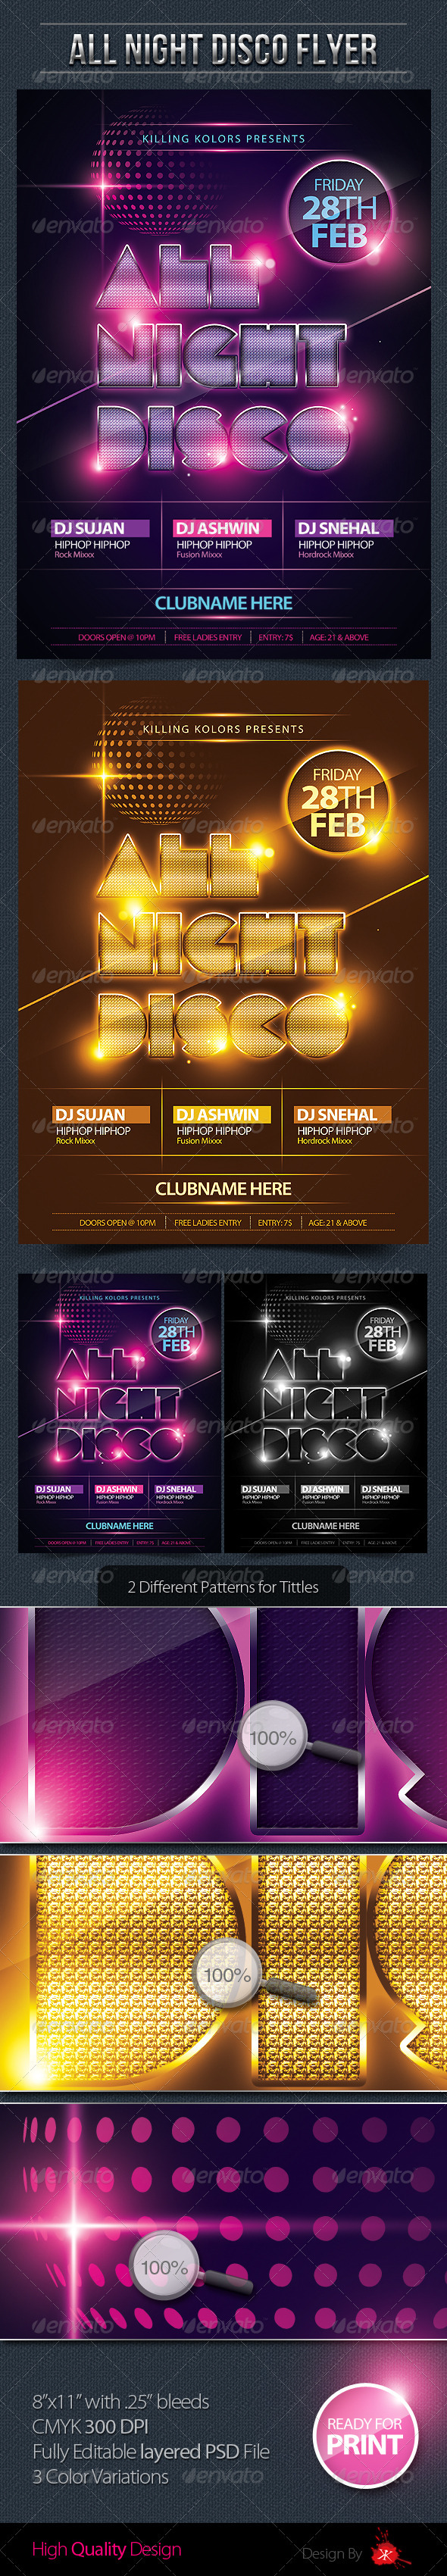 All Night Disco Flyer - Clubs & Parties Events